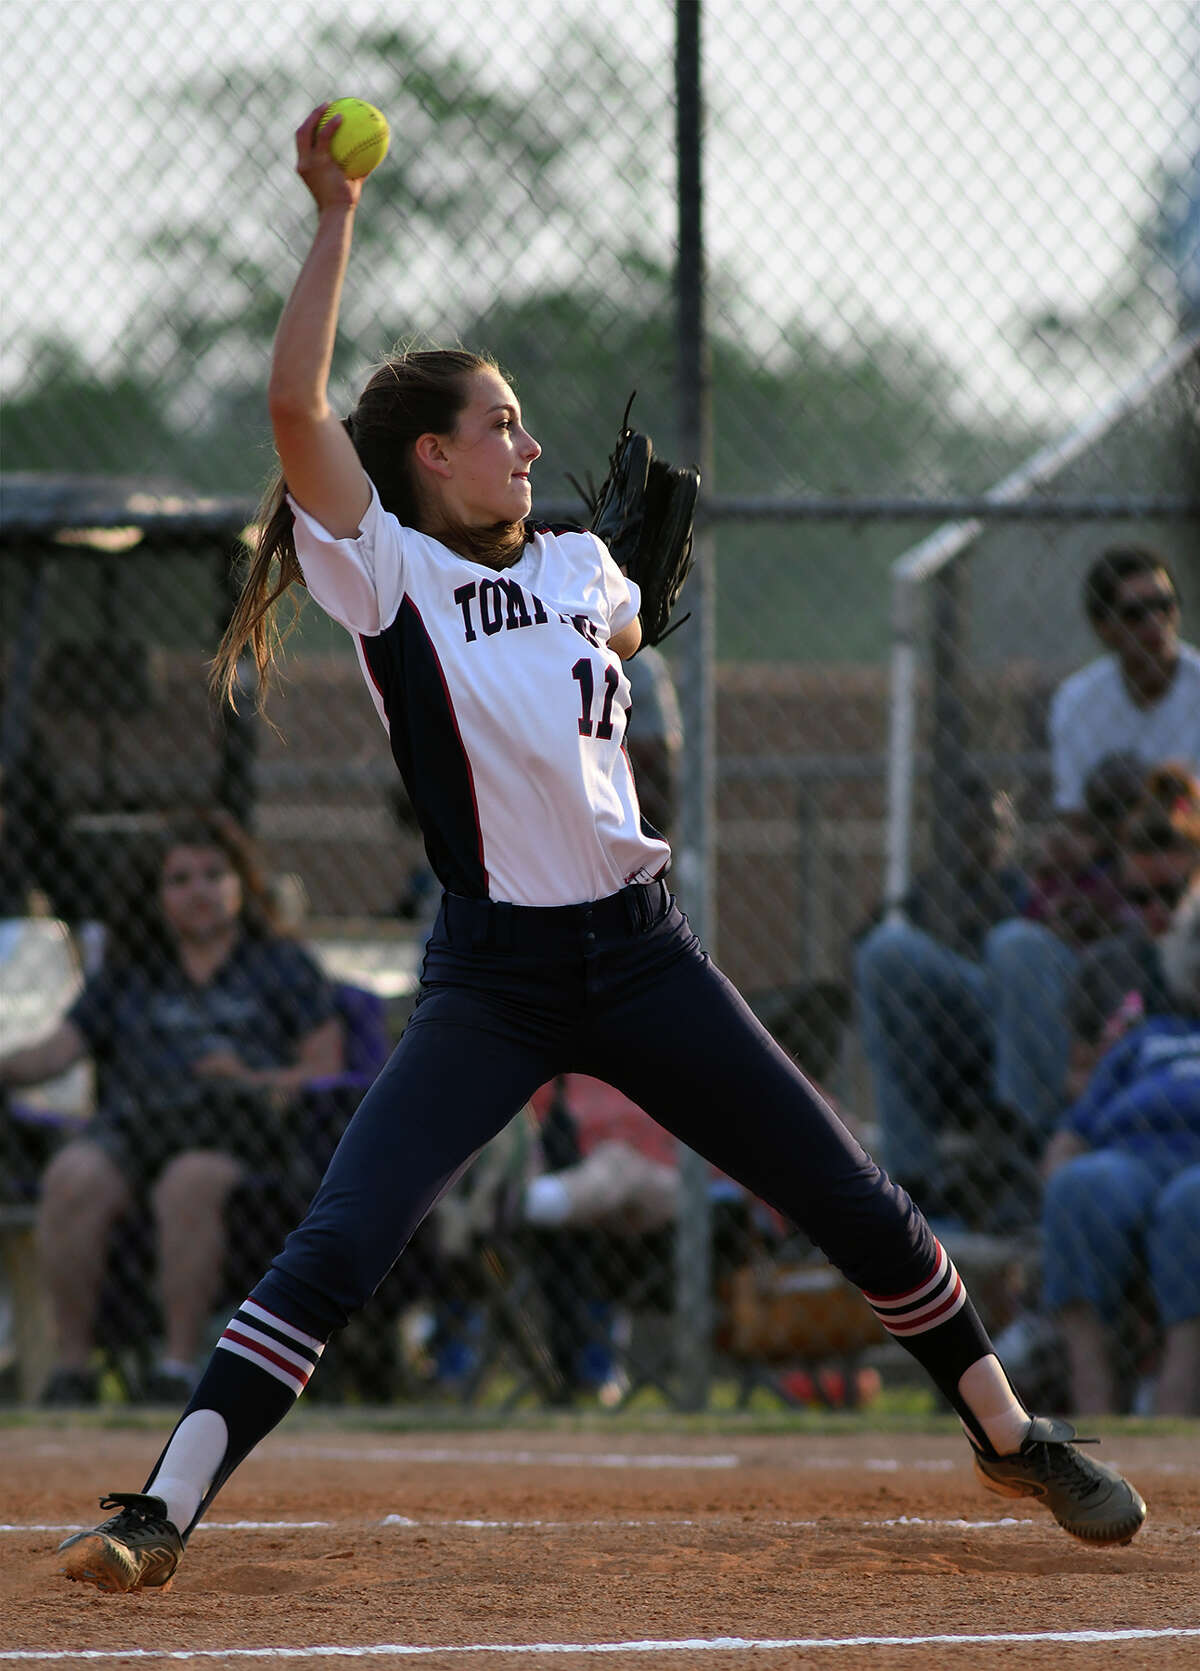 Tompkins junior pitcher Sydney Hodge works to a Kempner hitter in the bottom of the 6th inning of game two of their Region III-6A Bi-District Softball playoff series match-up at Kempner High School on Friday, April 28, 2017. (Photo by Jerry Baker/Freelance)